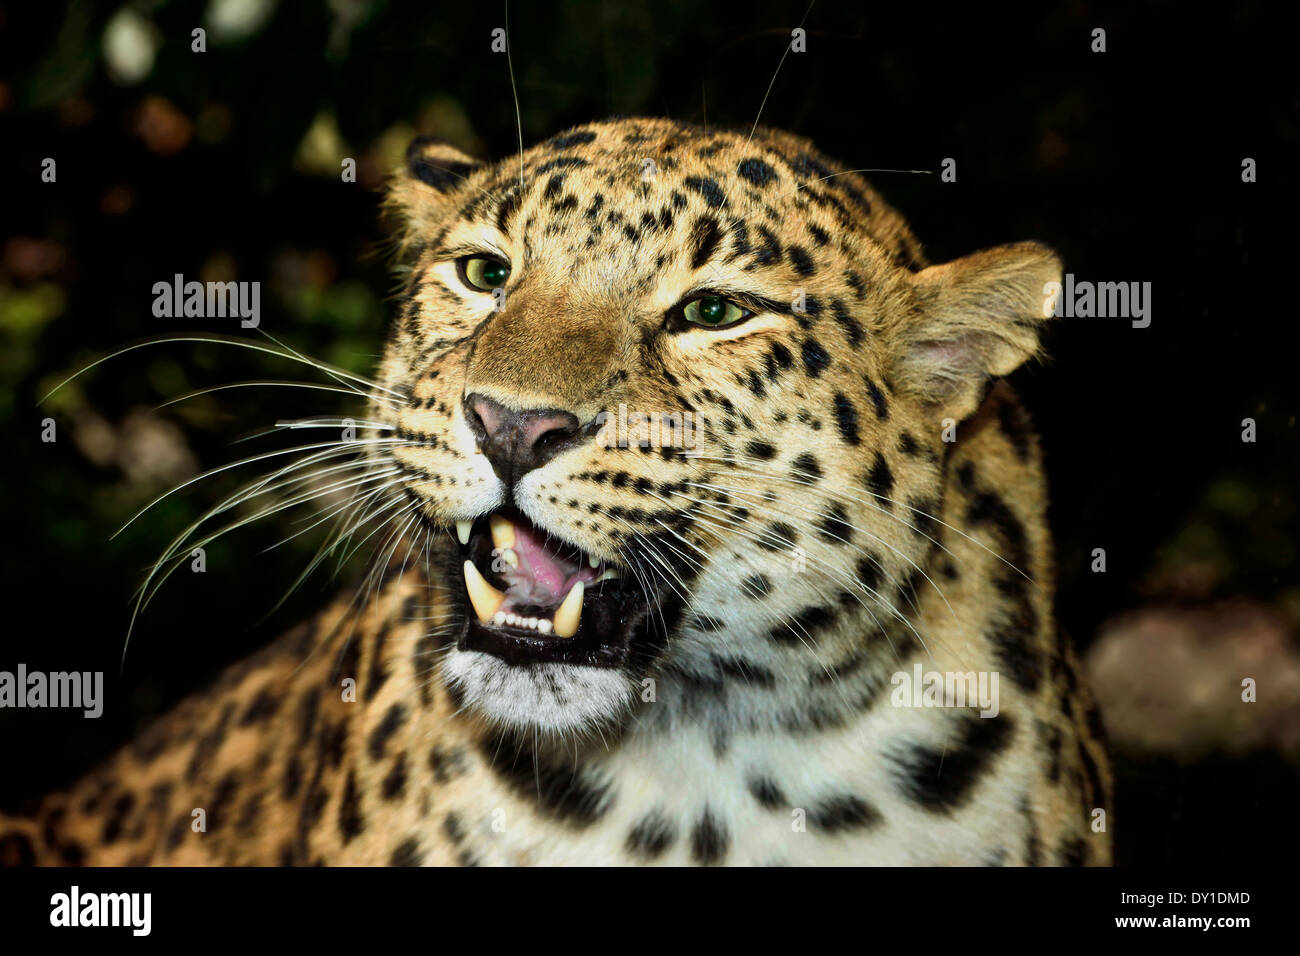 Amur leopard (Panthera pardus orientalis) close up of adult female roaring - Stock Image